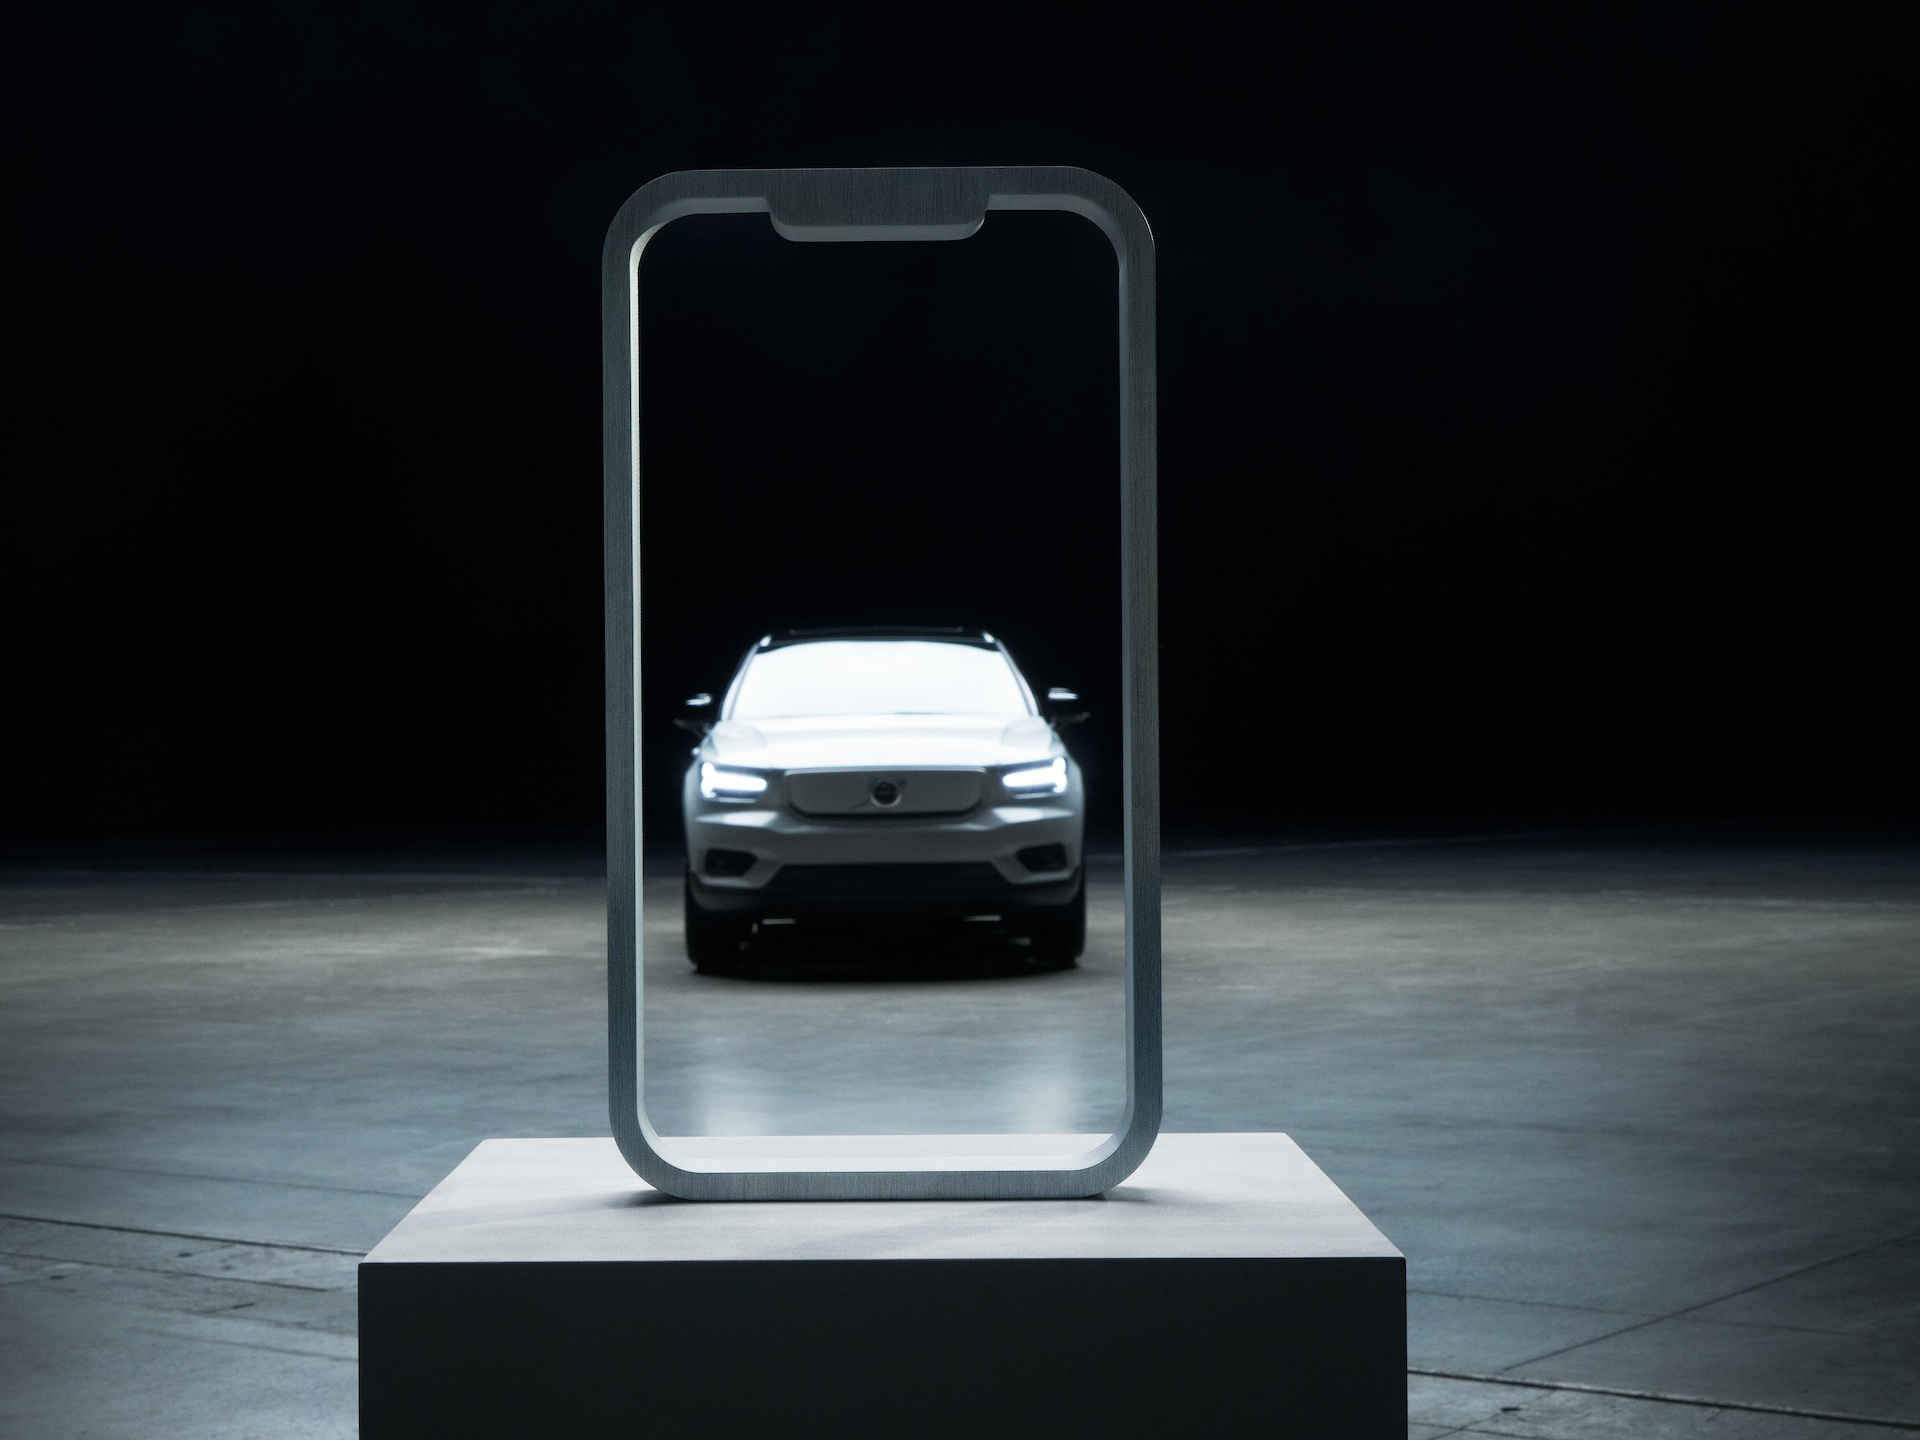 A Volvo XC40 Recharge framed by the outline of a mobile screen set on a podium.